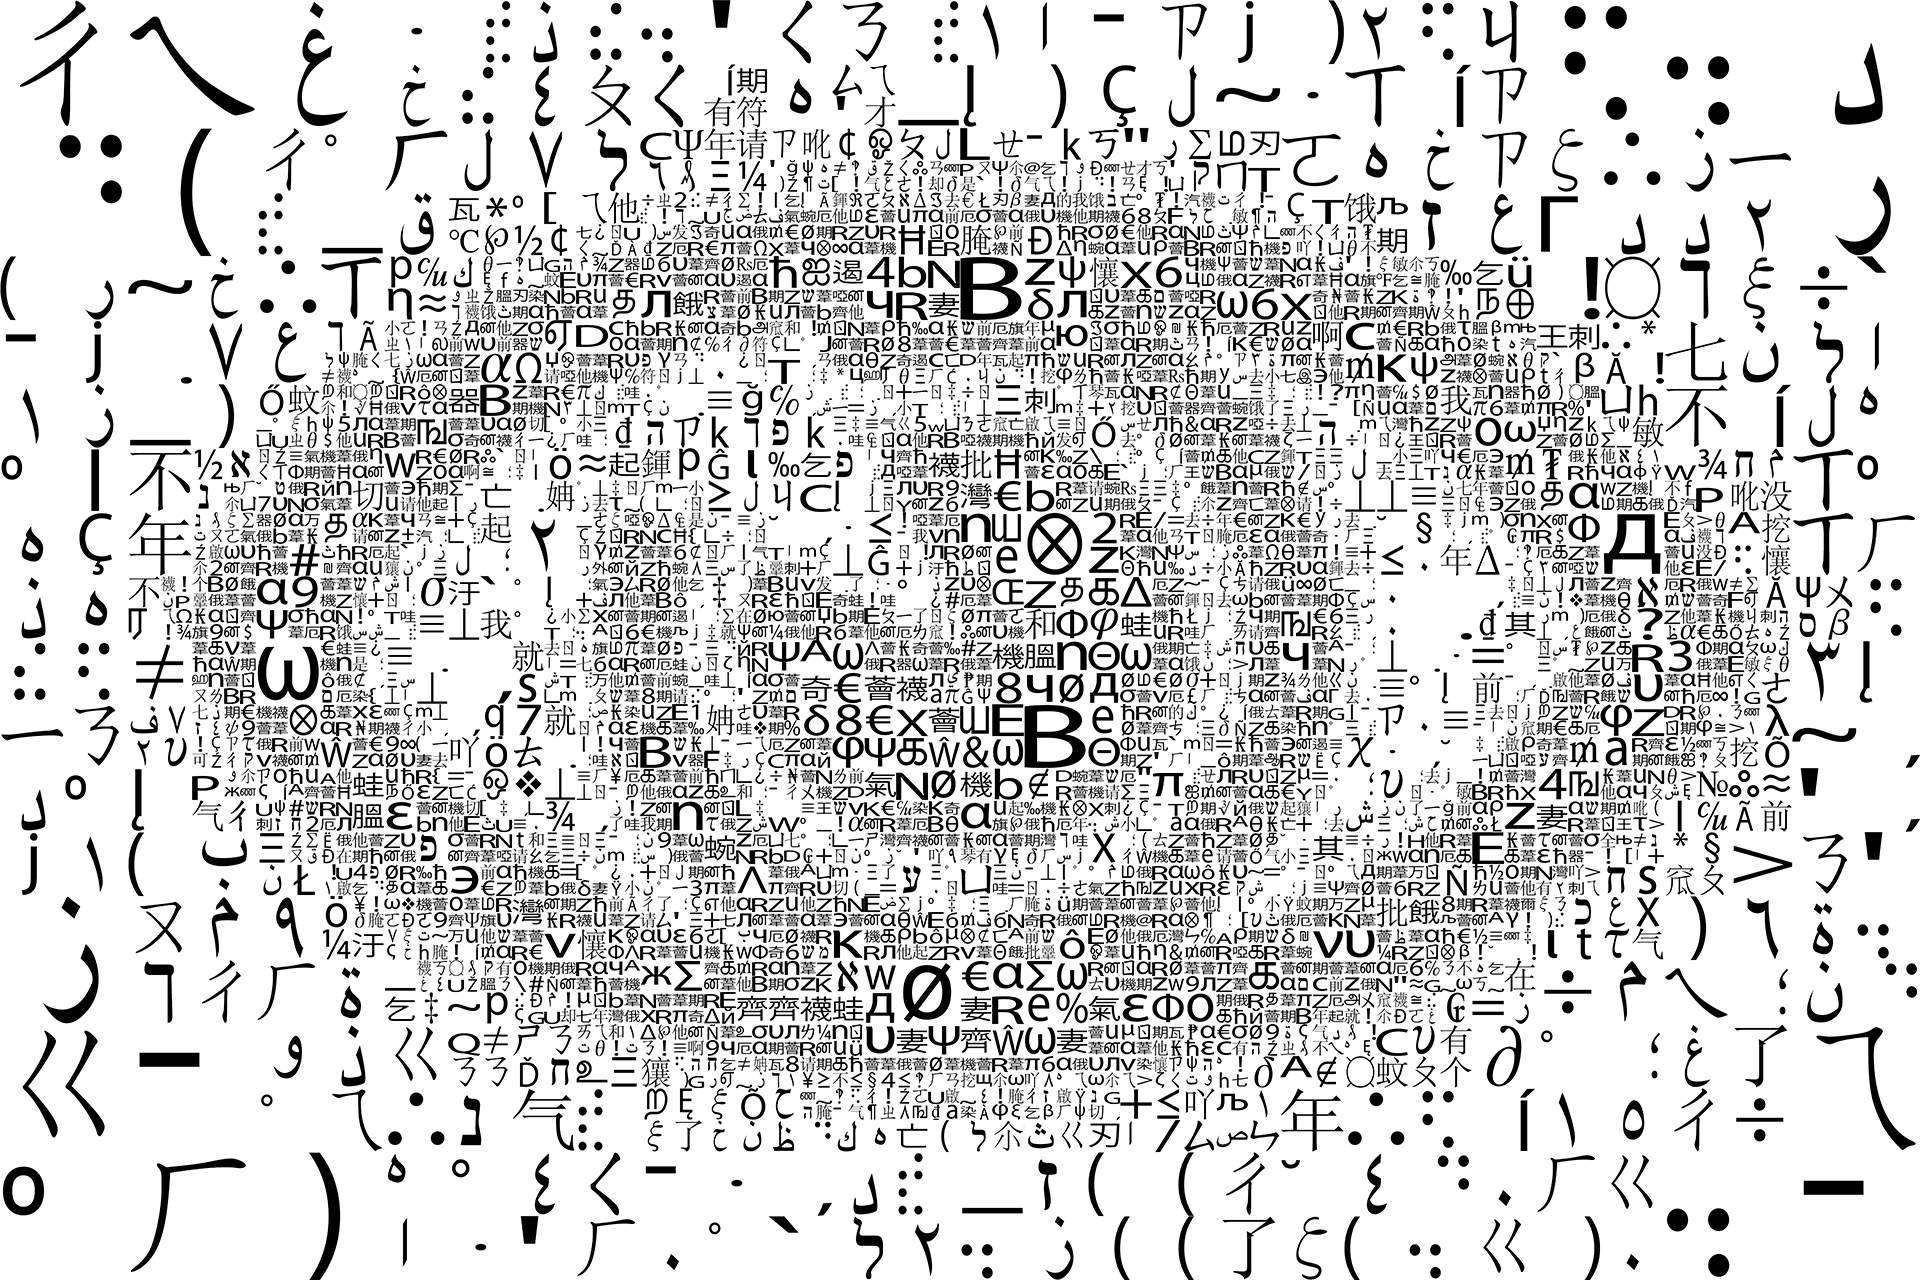 photo mosaic This monochrome eye was created using approximately 500 symbols and alphanumeric characters